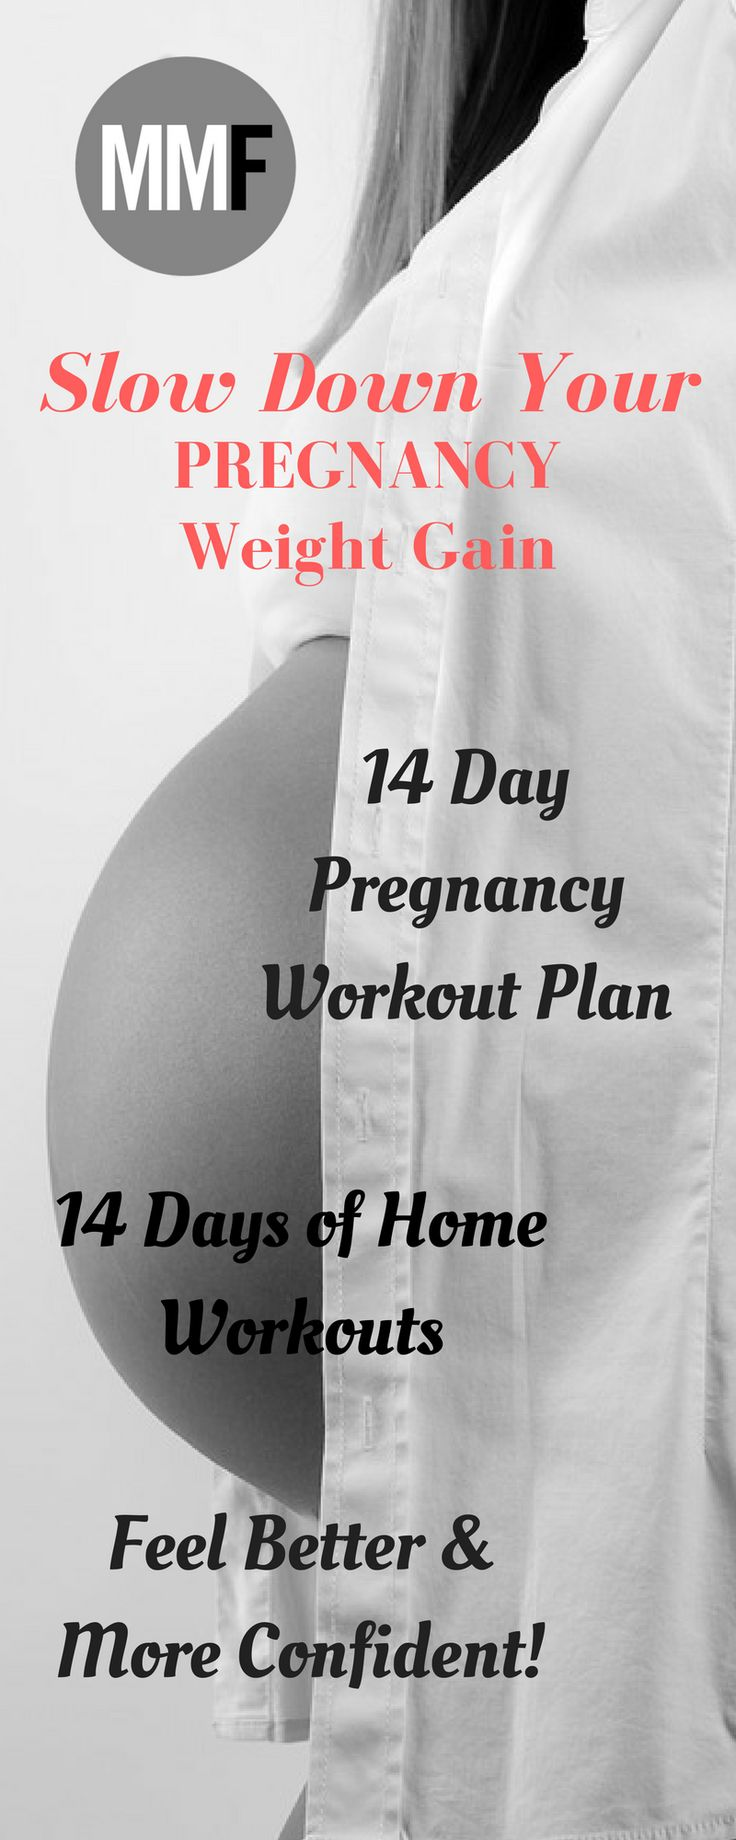 Slow Pregnancy Weight Gain with this 14 Day Pregnancy Workout Plan.